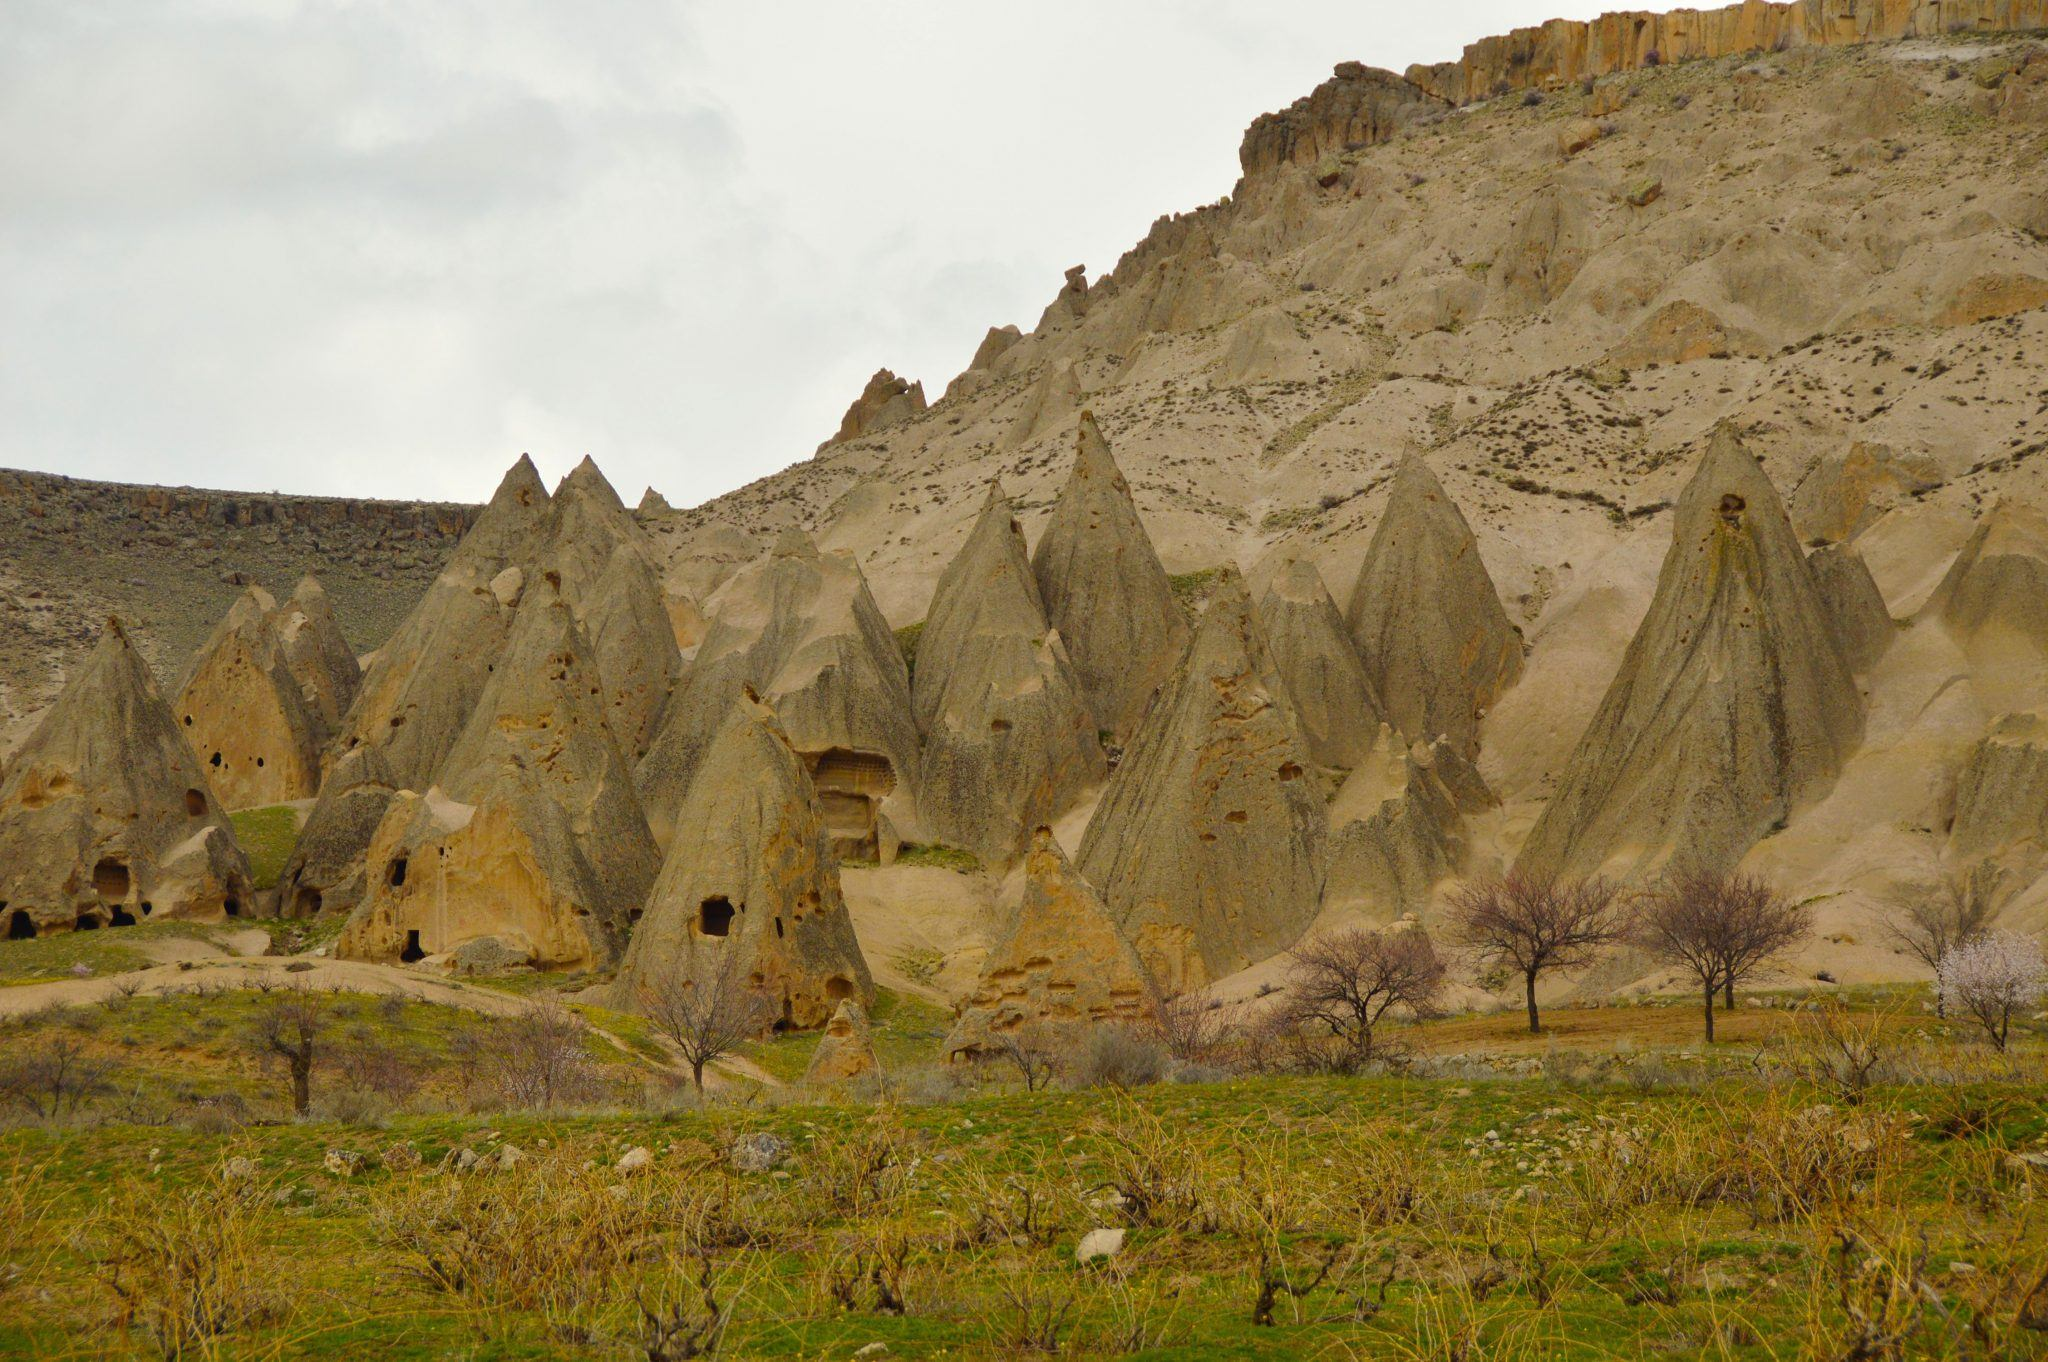 Ilhara Valley Chimneys in Cappadocia Turkey